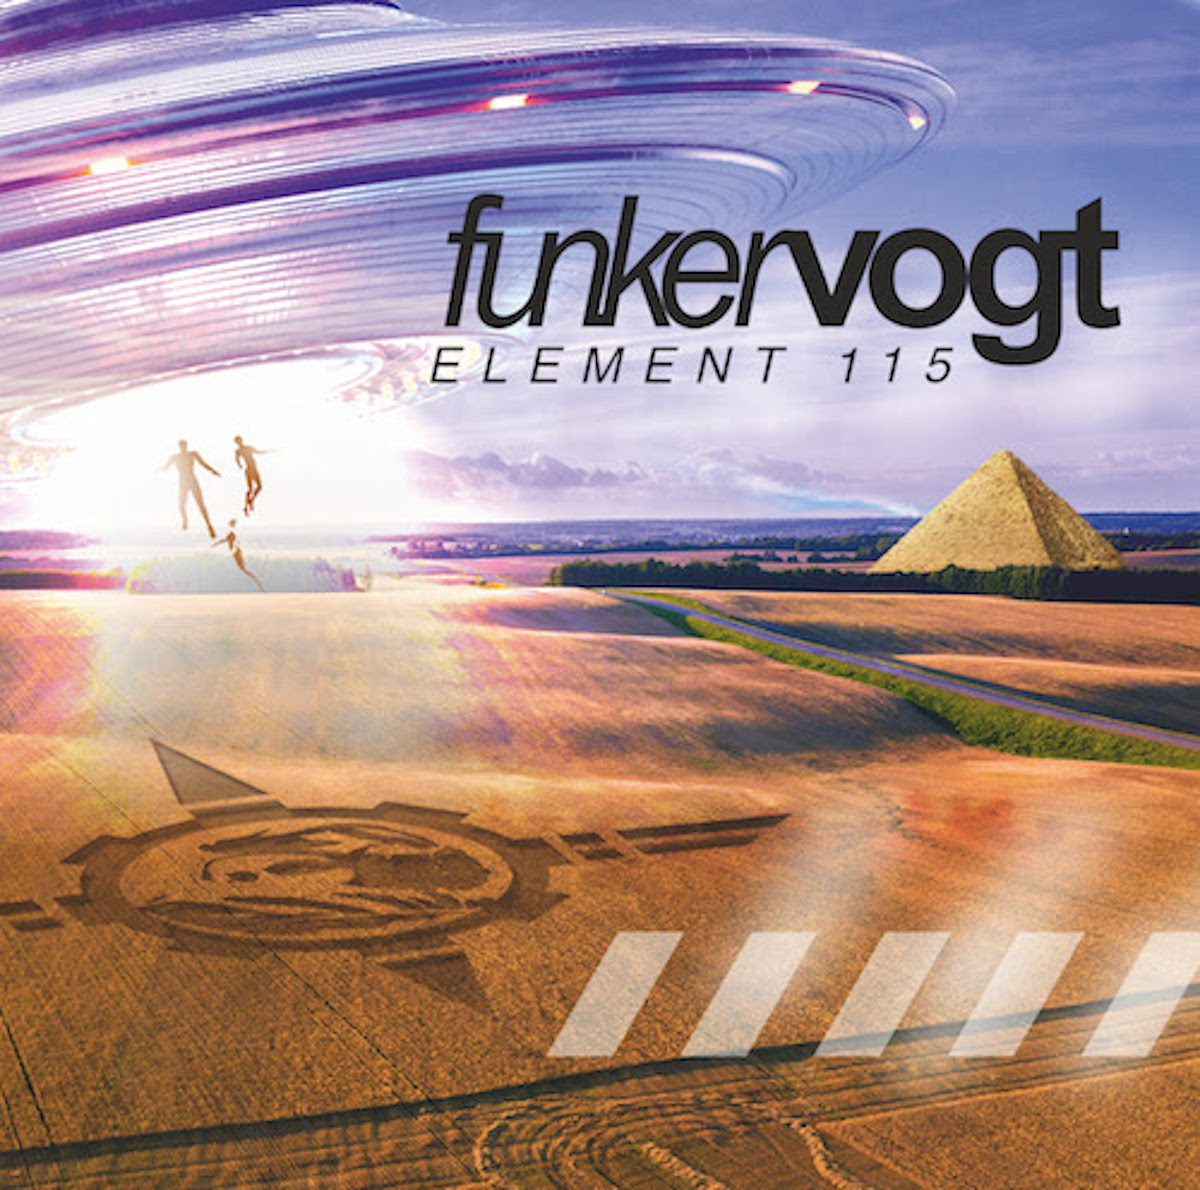 Funker Vogt return with new limited edition 2CD album 'Element 115' + new 'Olympus' video